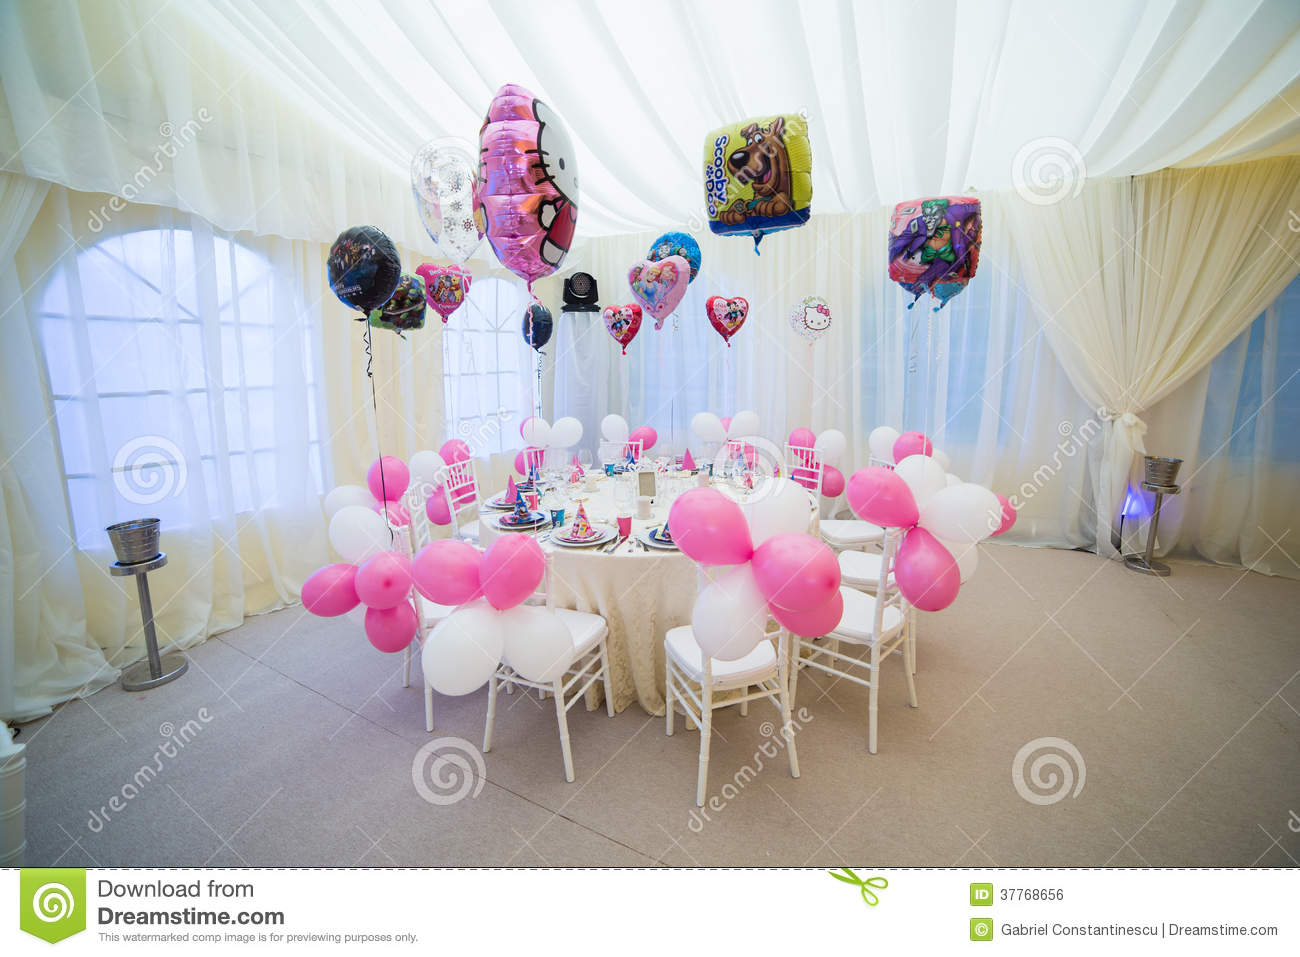 Wedding table for children